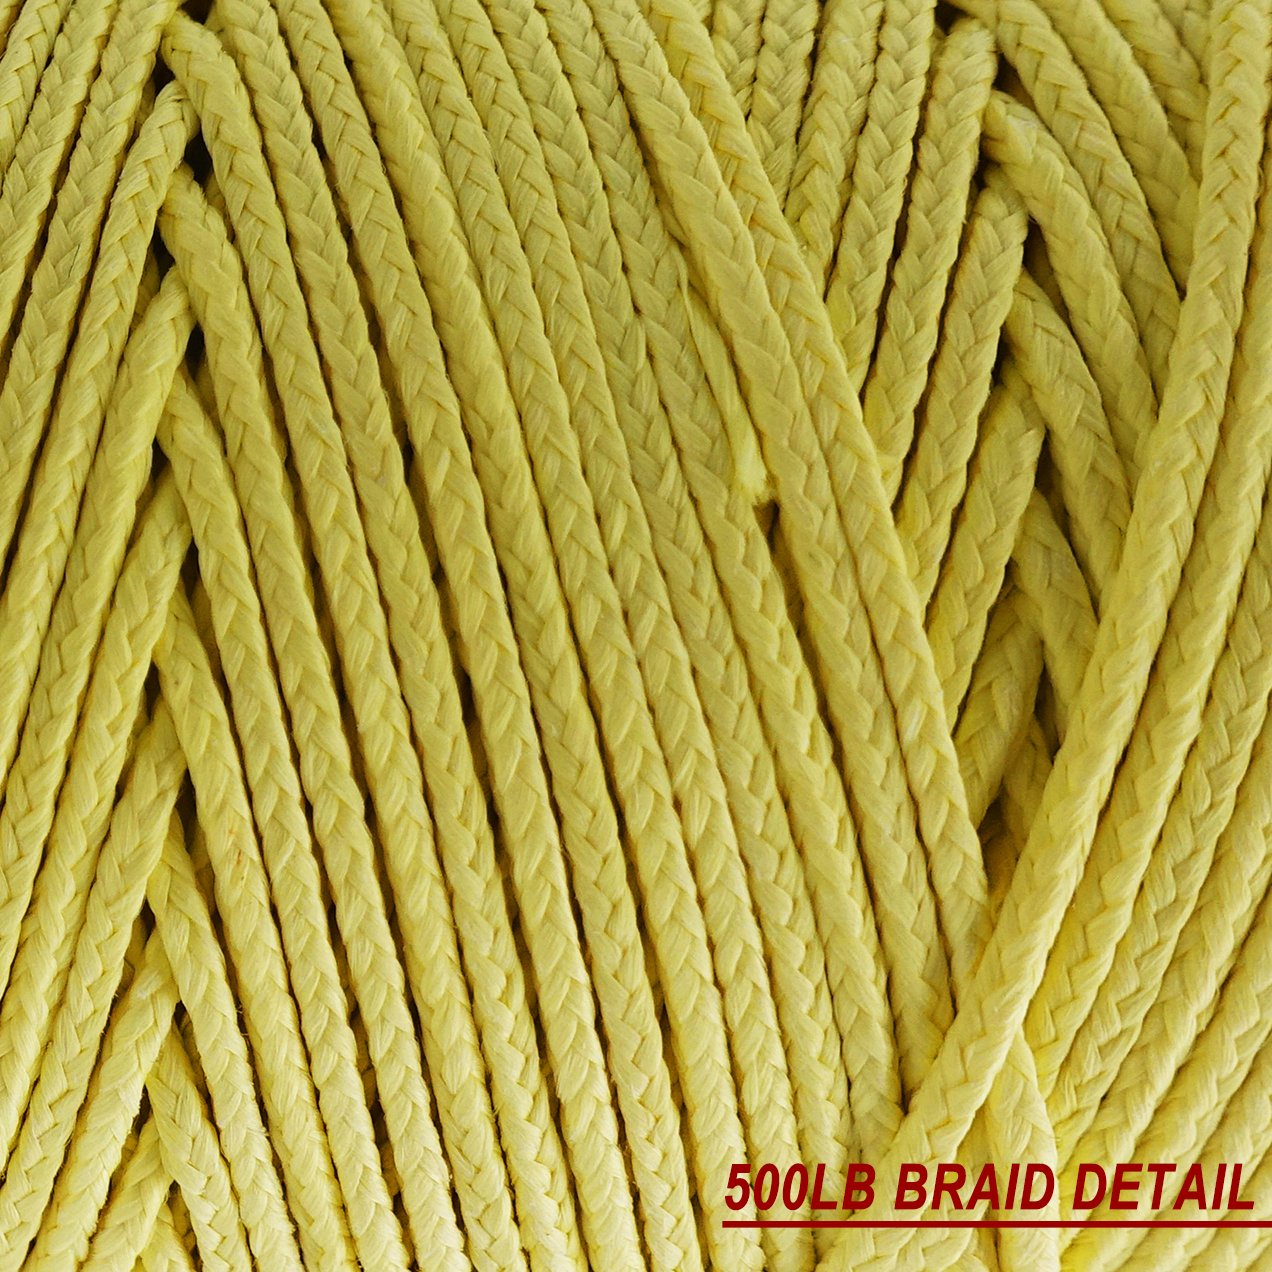 emma kites Kevlar Braided Cord 500lb 100ft High Strength Low Stretch Tent Tarp Guyline Suspension for Camping Hiking Backpacking Recreational Marine Outdoors Activities by emma kites (Image #3)